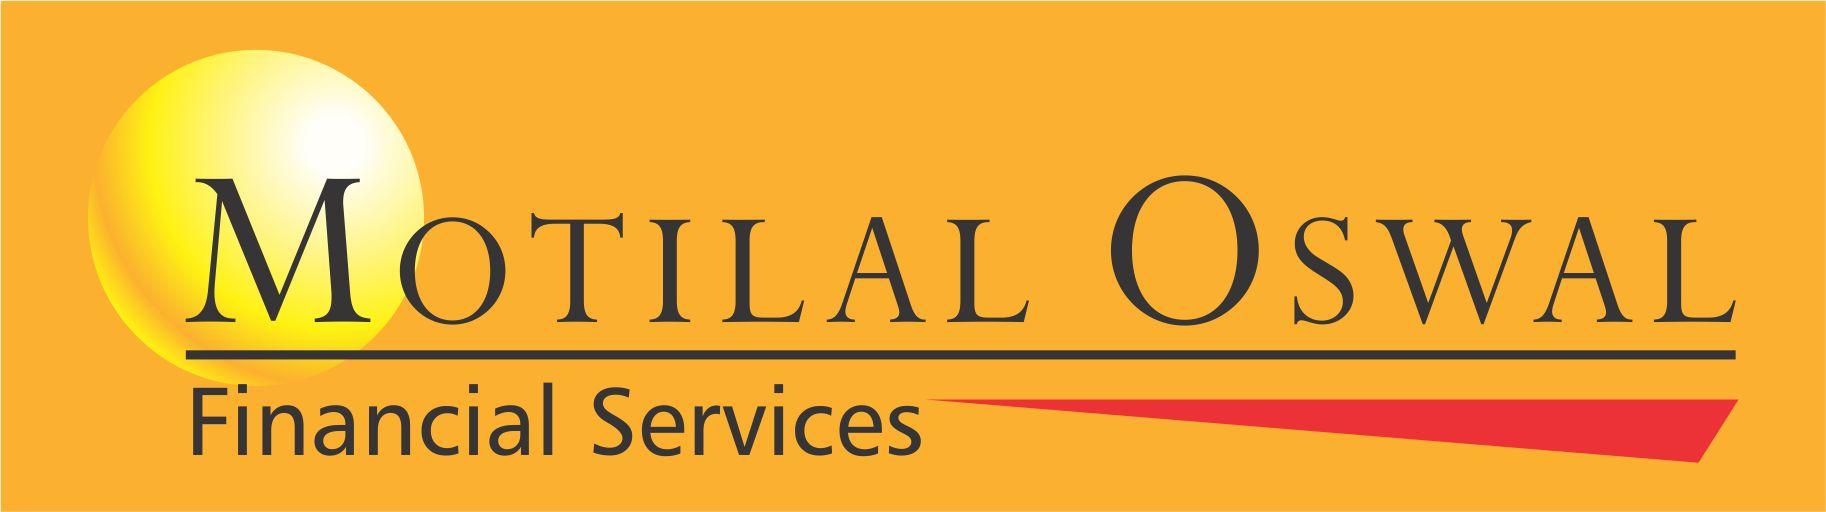 Motilal Oswal Securities Ltd.